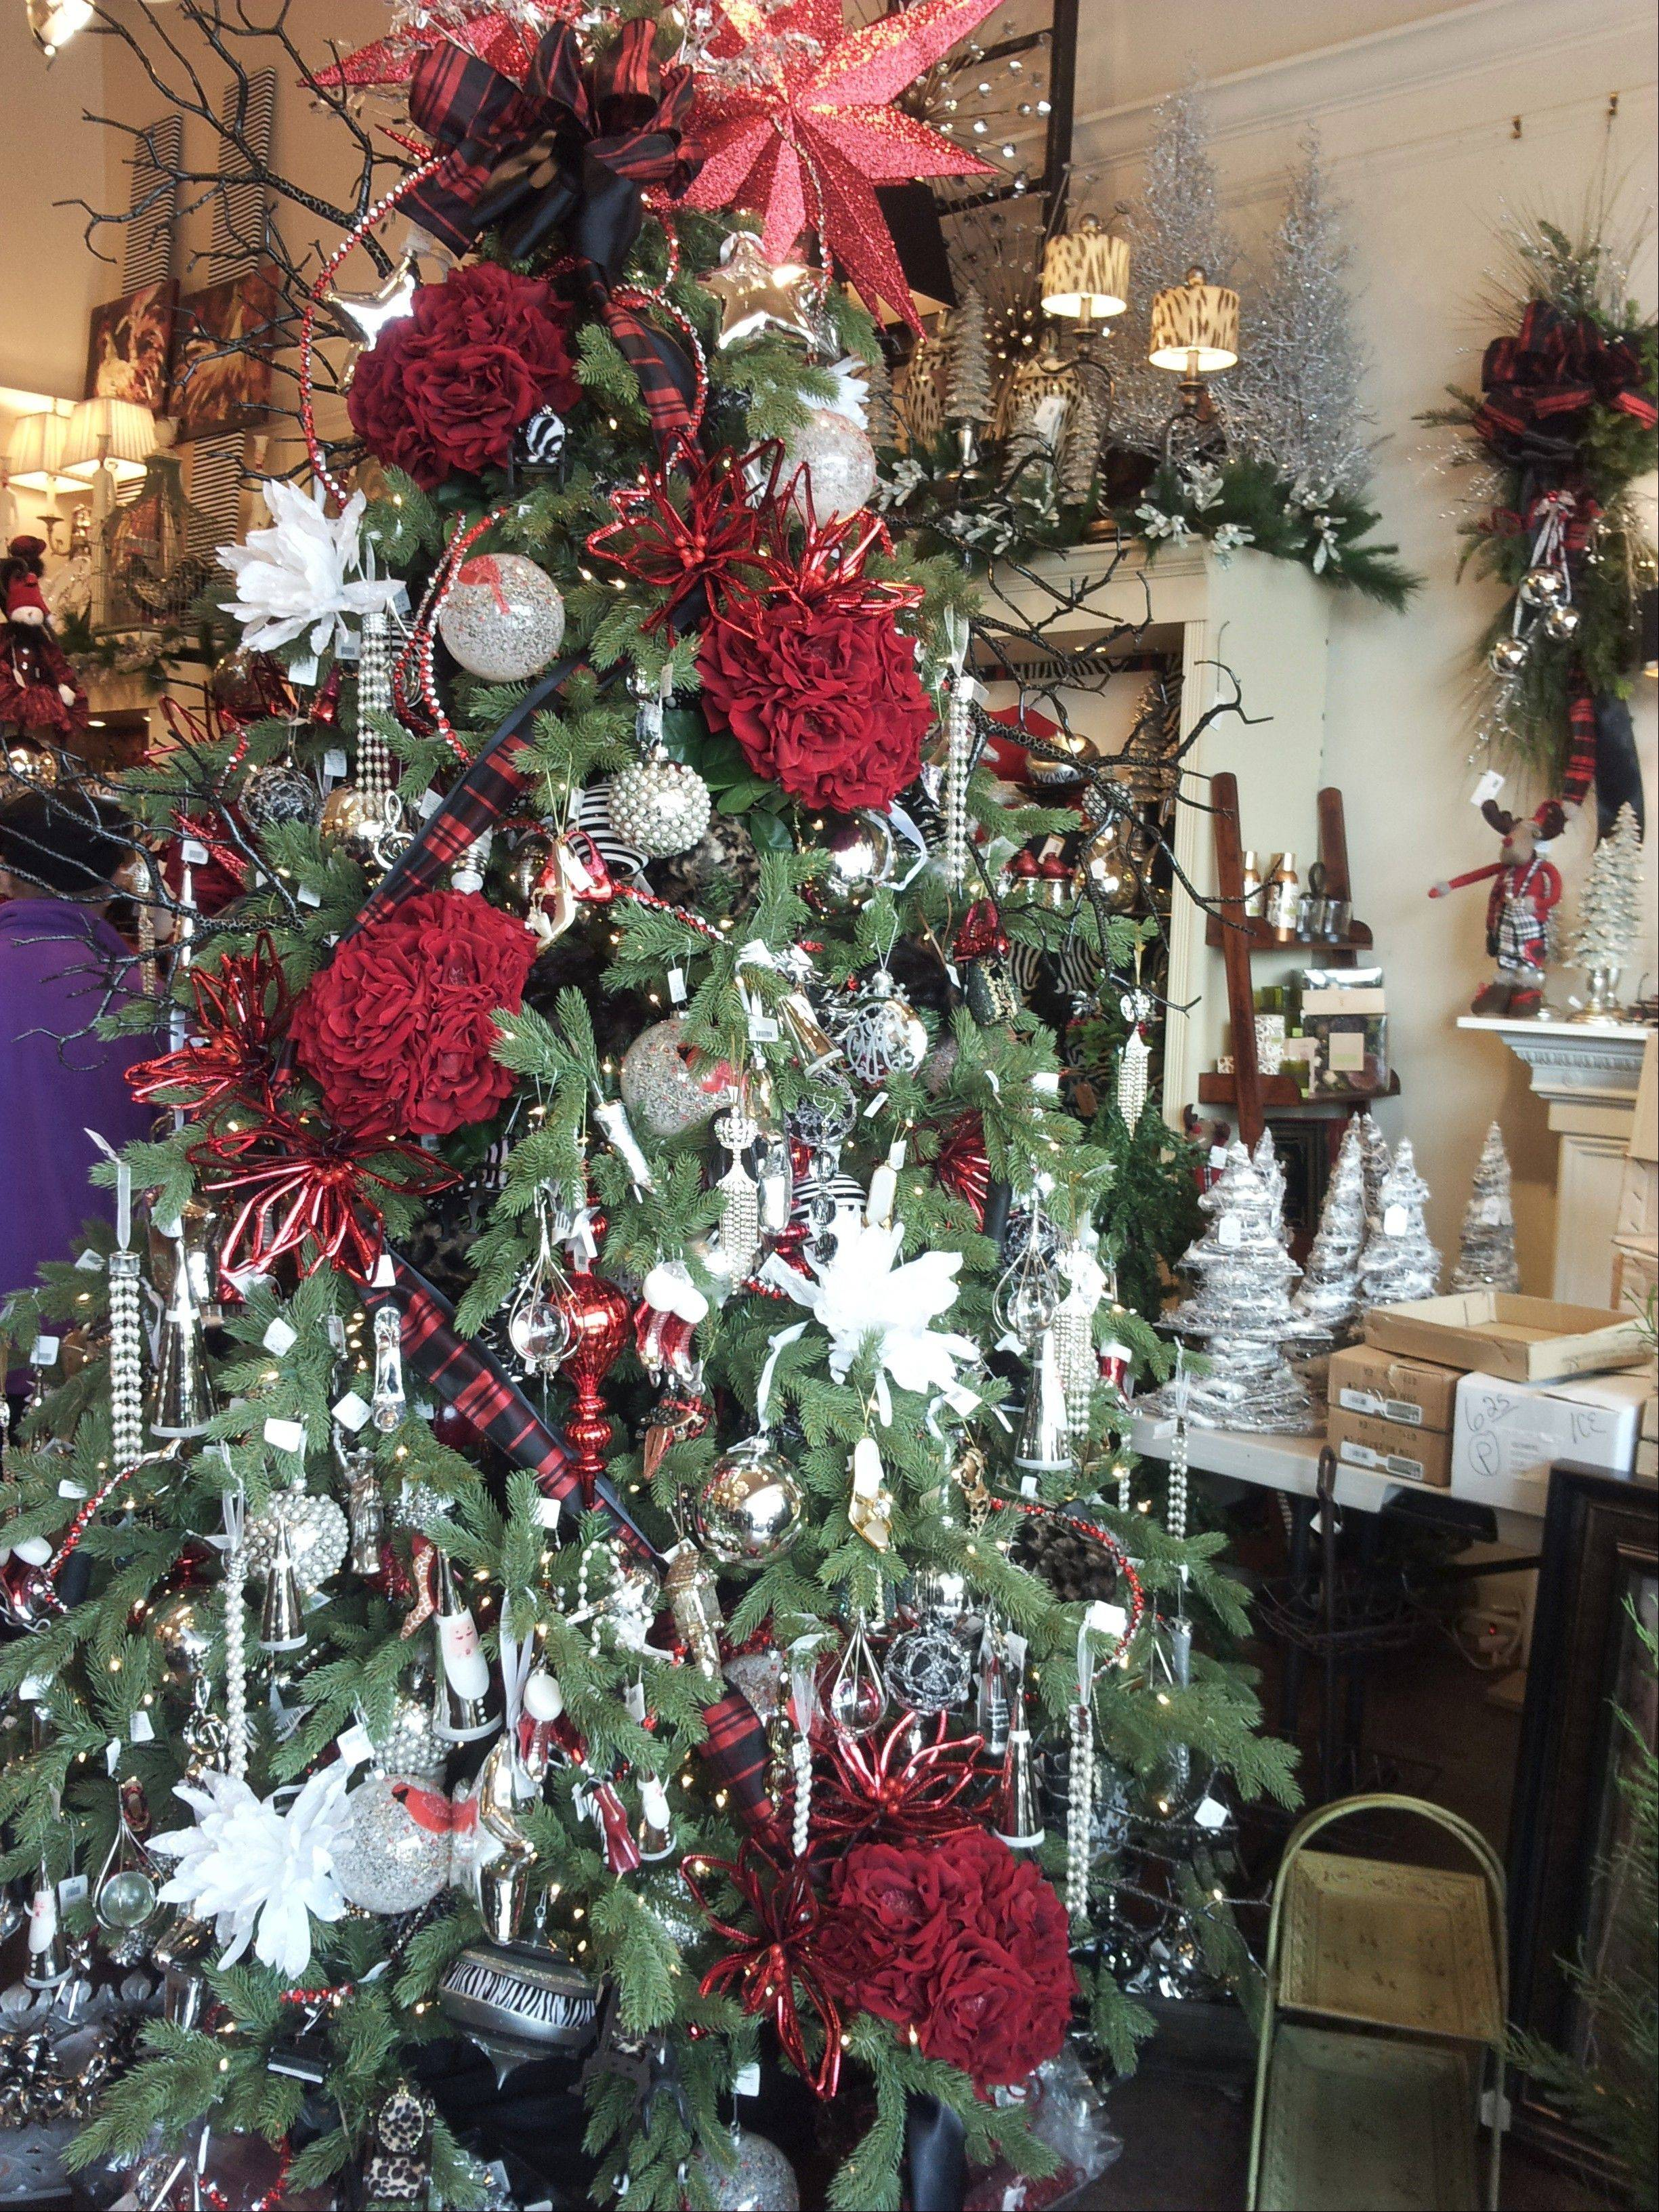 Silk 'N Things in Deer Park Town Center is offering holiday items in three major themes this year, including Forest Frost, which includes owls, snowflakes, icicles, snow houses, deer -- all with crystal glitz.